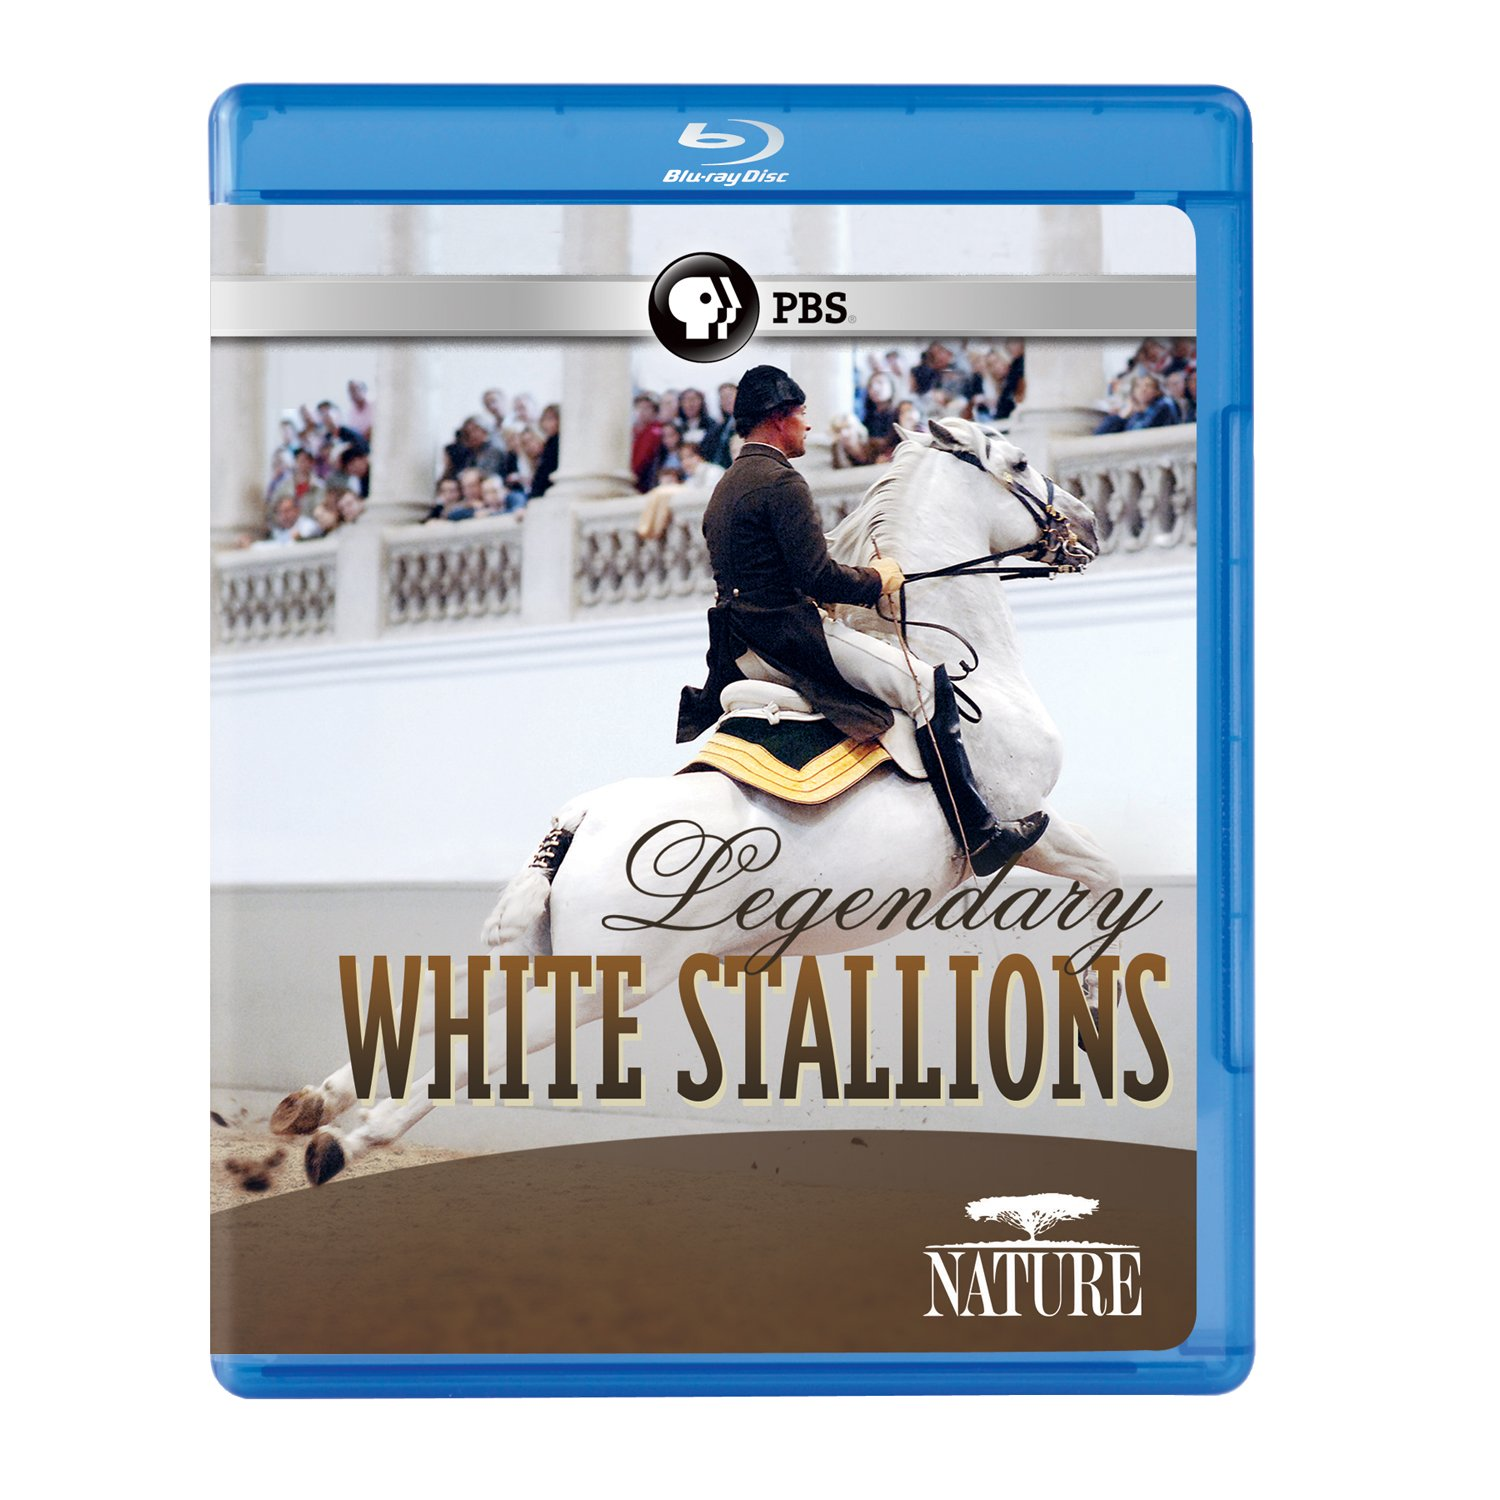 Nature: Legendary White Stallions [Blu-ray]